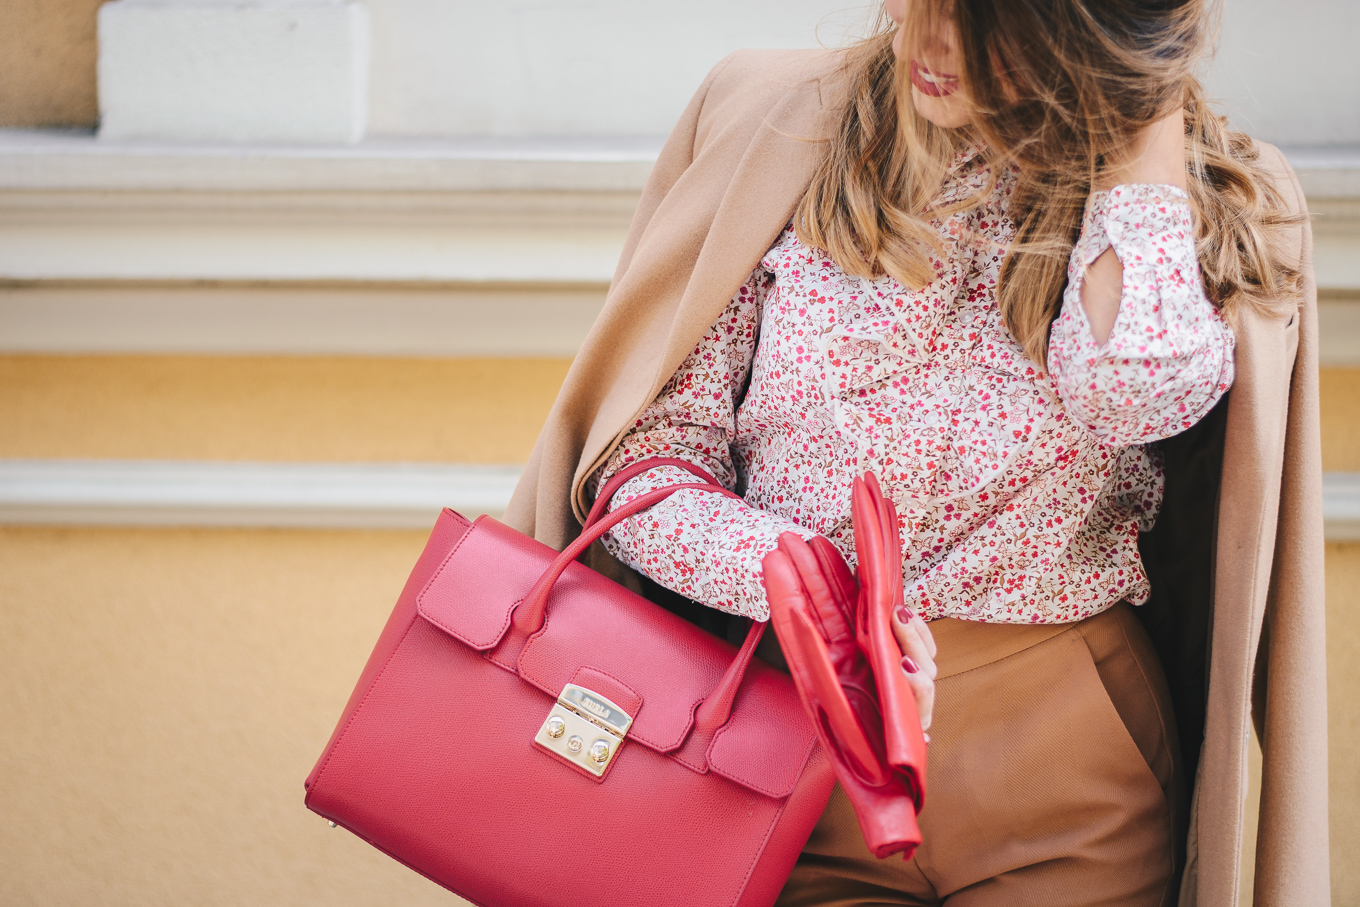 blogger favorite handbag